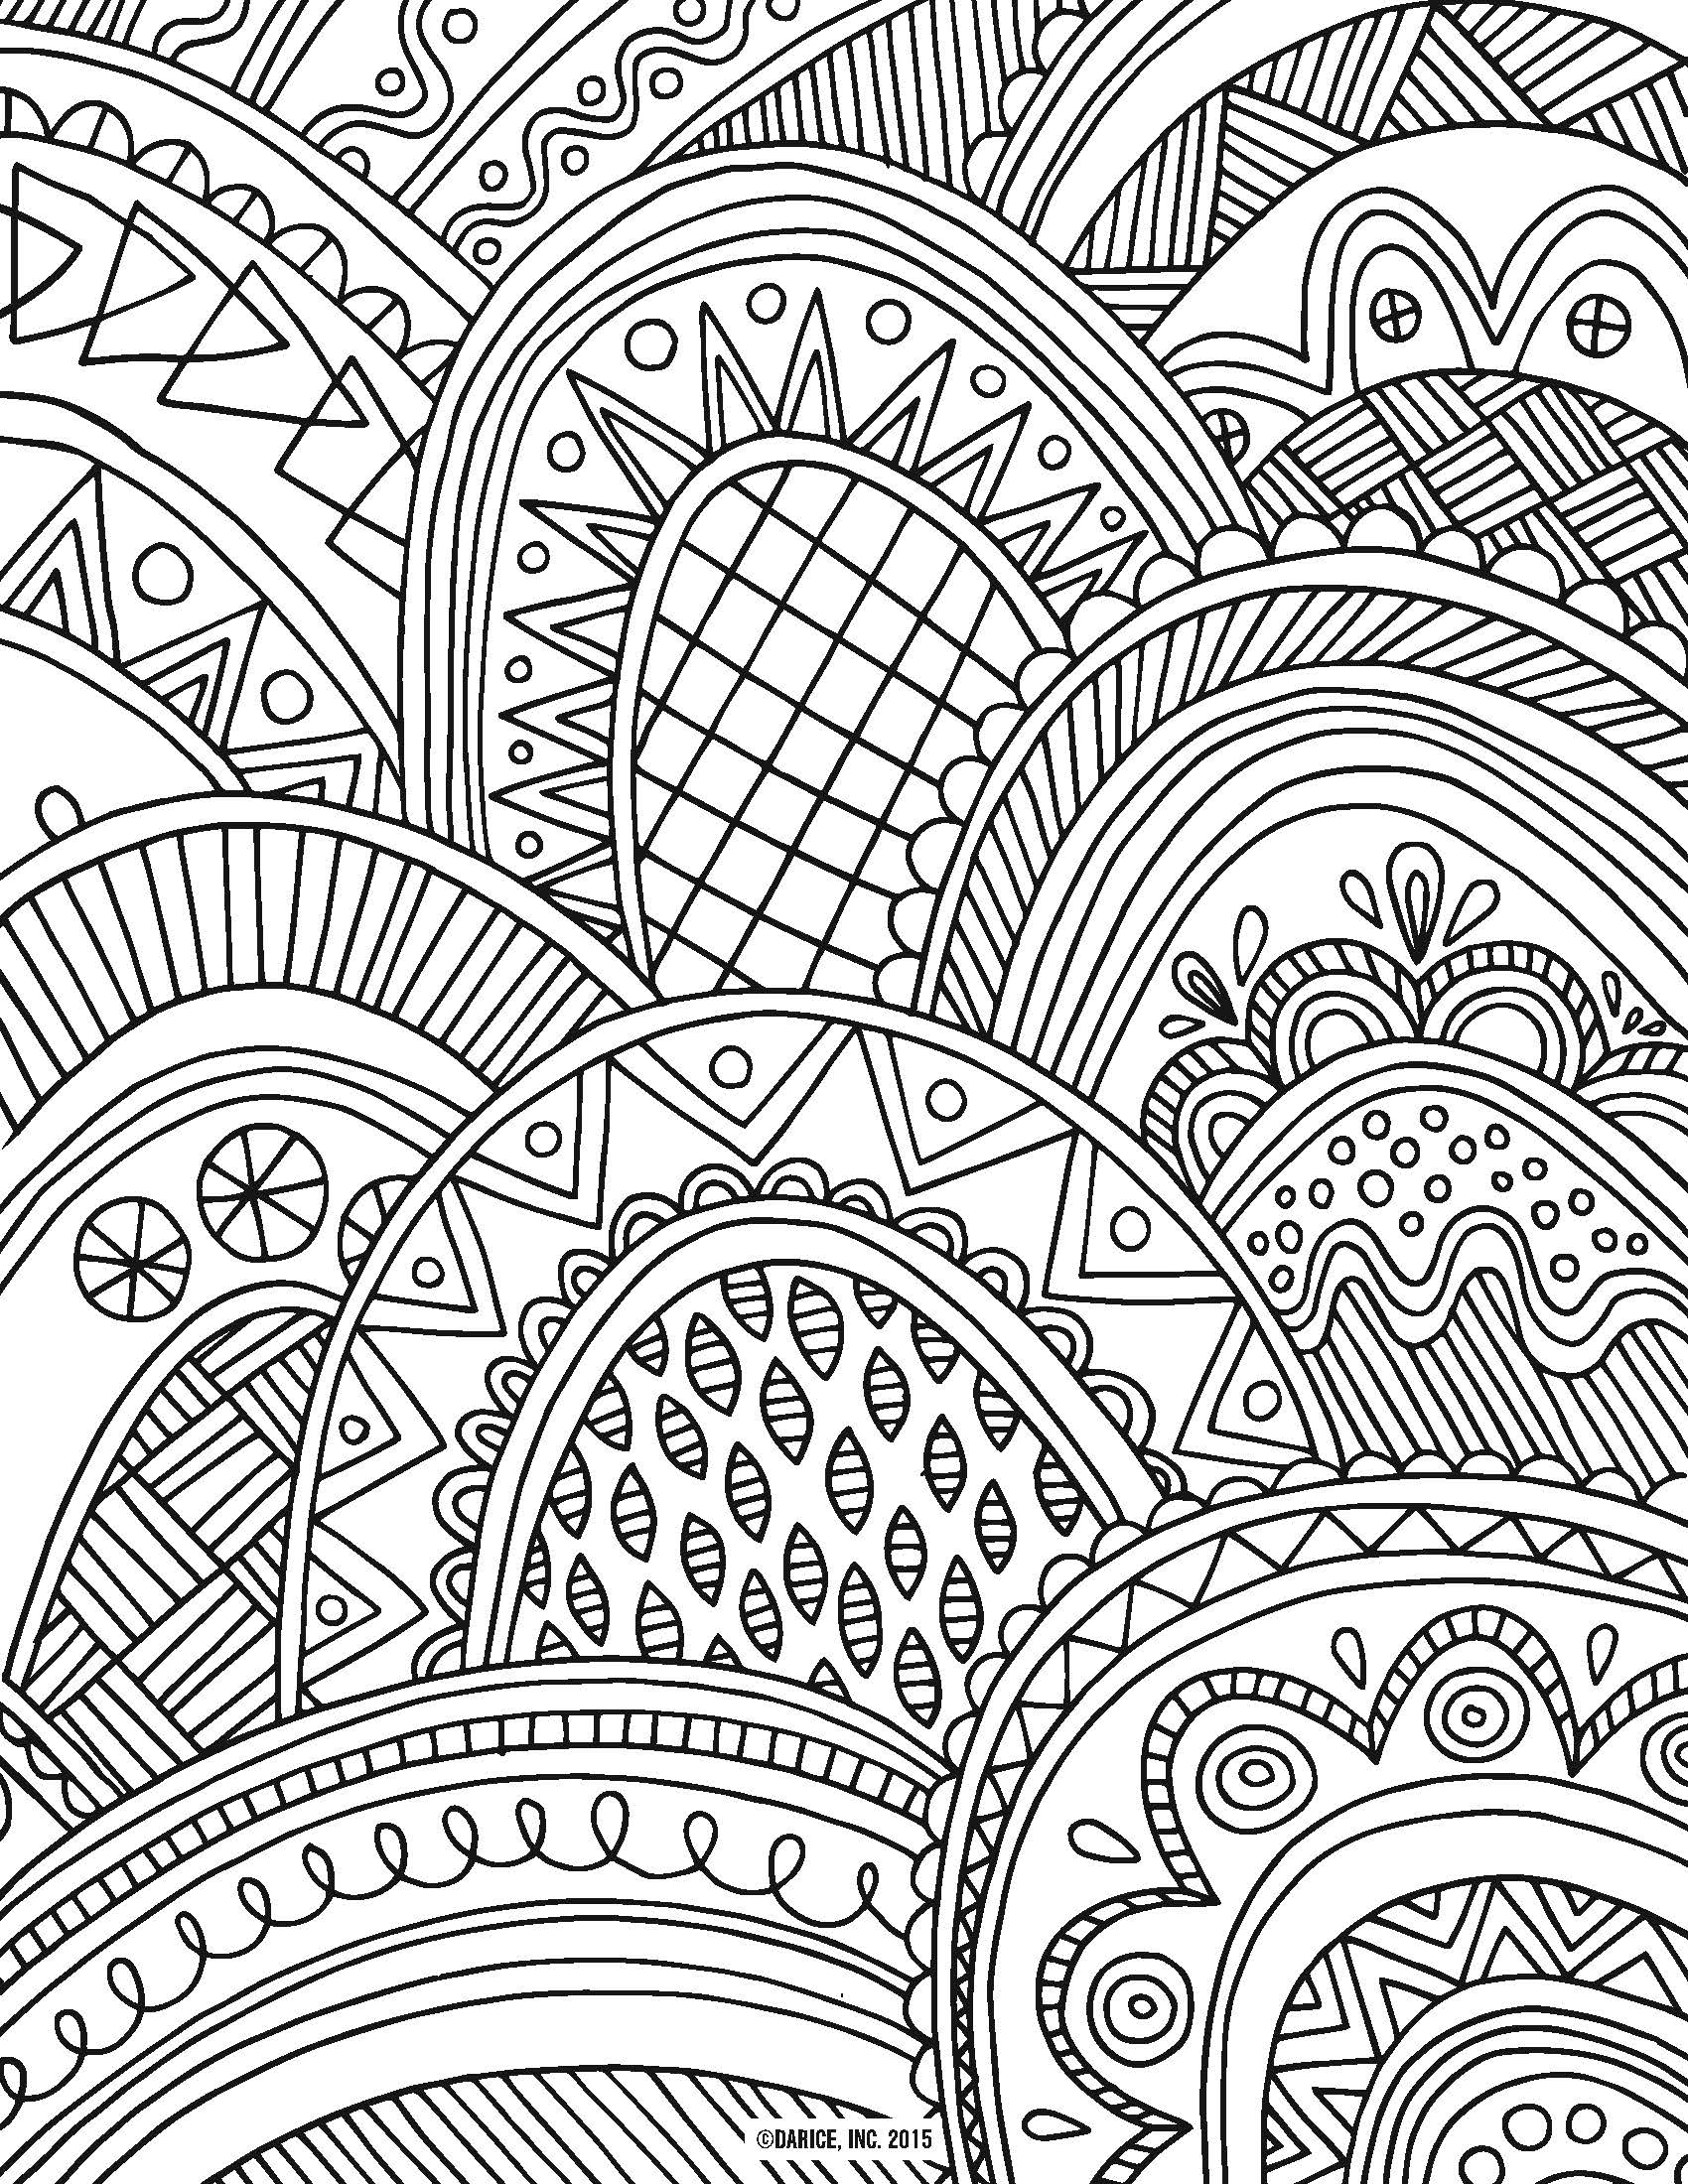 for coloring hard coloring pages for adults best coloring pages for kids for coloring